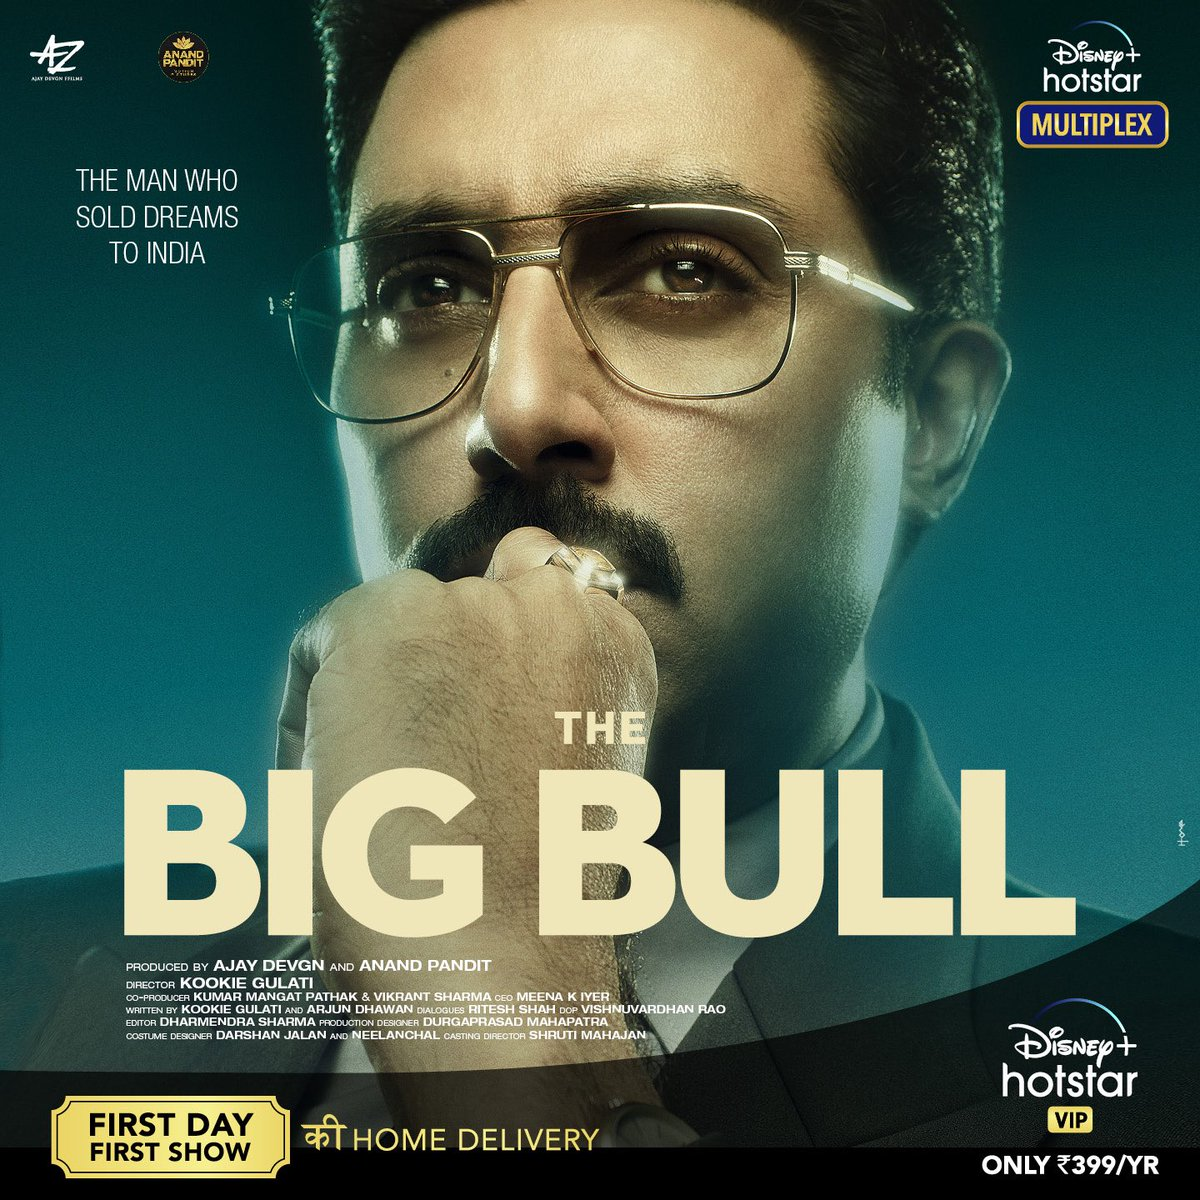 #TheBigBull - an exceptional tale of a man who sold dreams to India. So thrilled to get this home delivered to you where you'll get to watch the First Day First Show with #DisneyPlusHostarMultiplex only on @DisneyPlusHSVIP @juniorbachchan @Ileana_Official https://t.co/0Vt7Y3ufHK